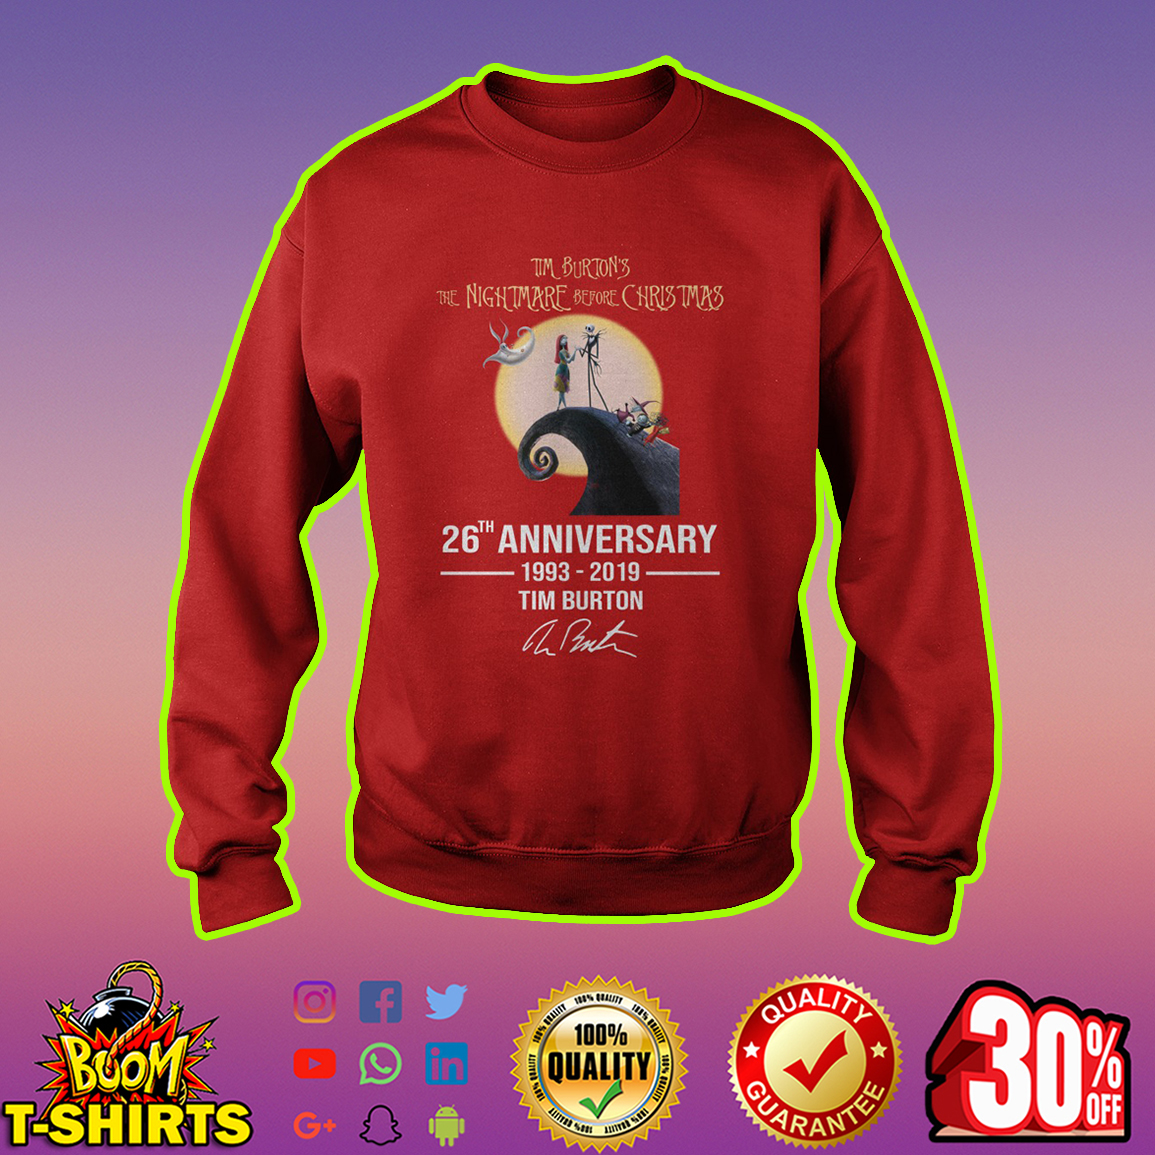 The Nightmare before Christmas 26th anniversary 1993 2019 Tim Burton sweatshirt